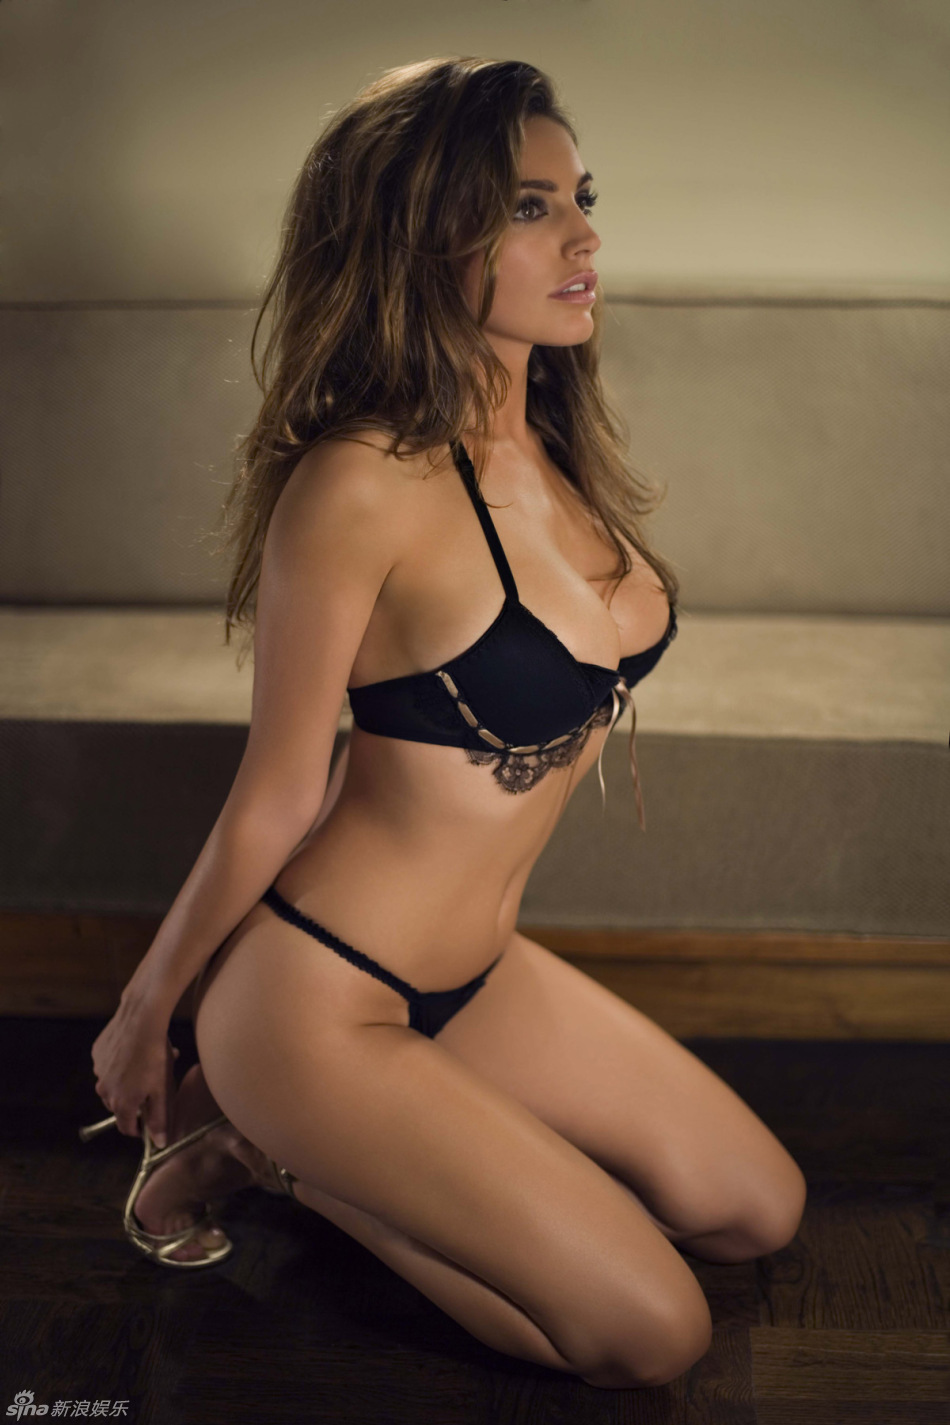 Sexy pics of kelly brook